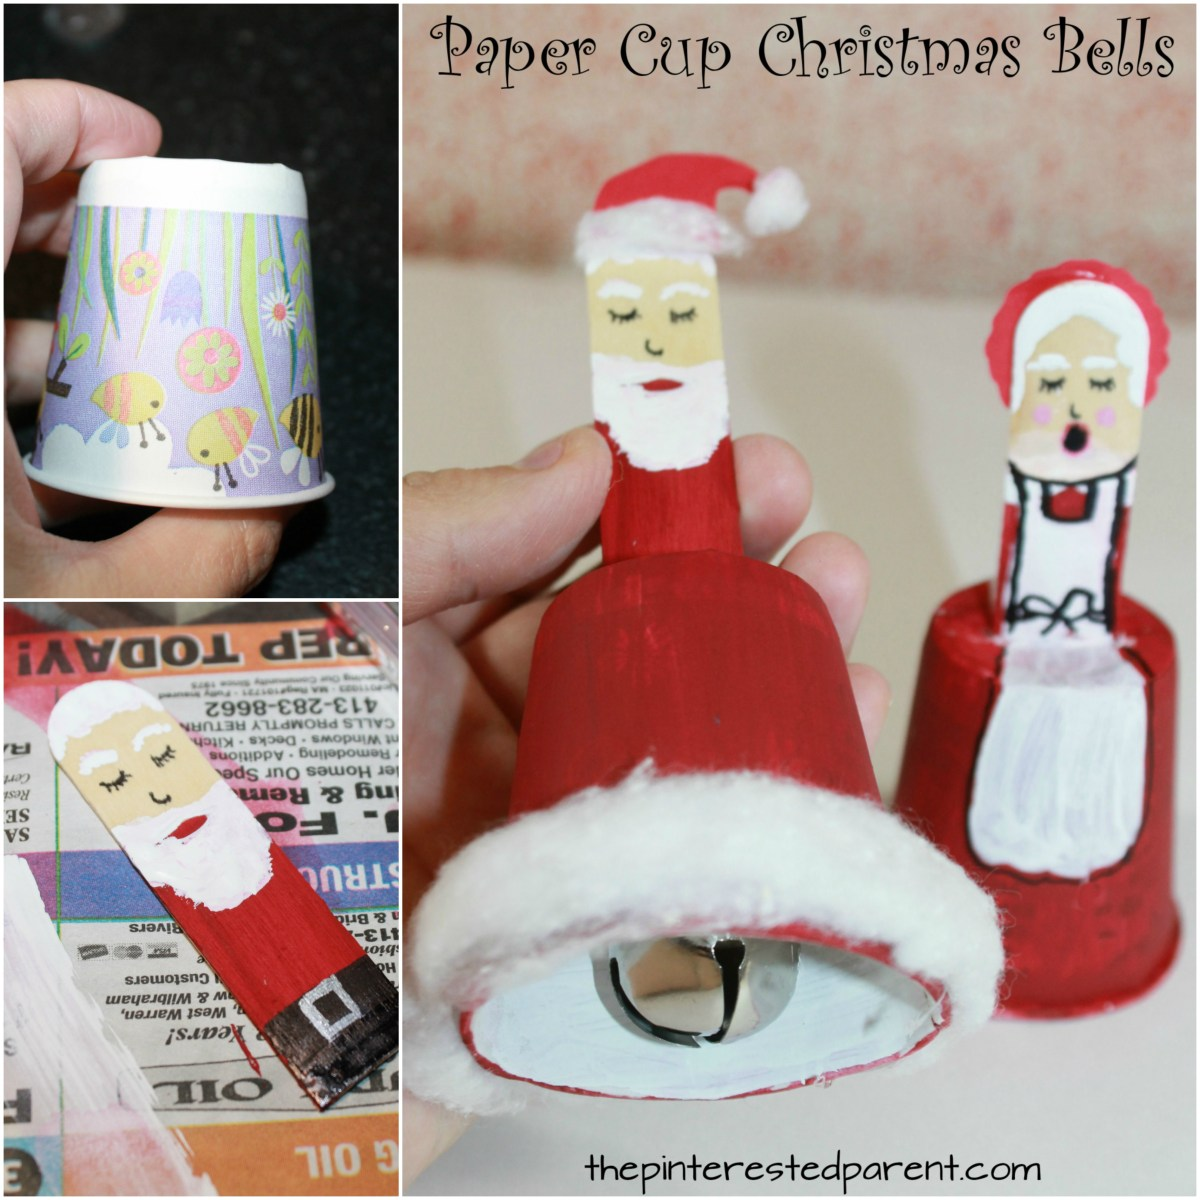 Paper Cup Christmas Bells